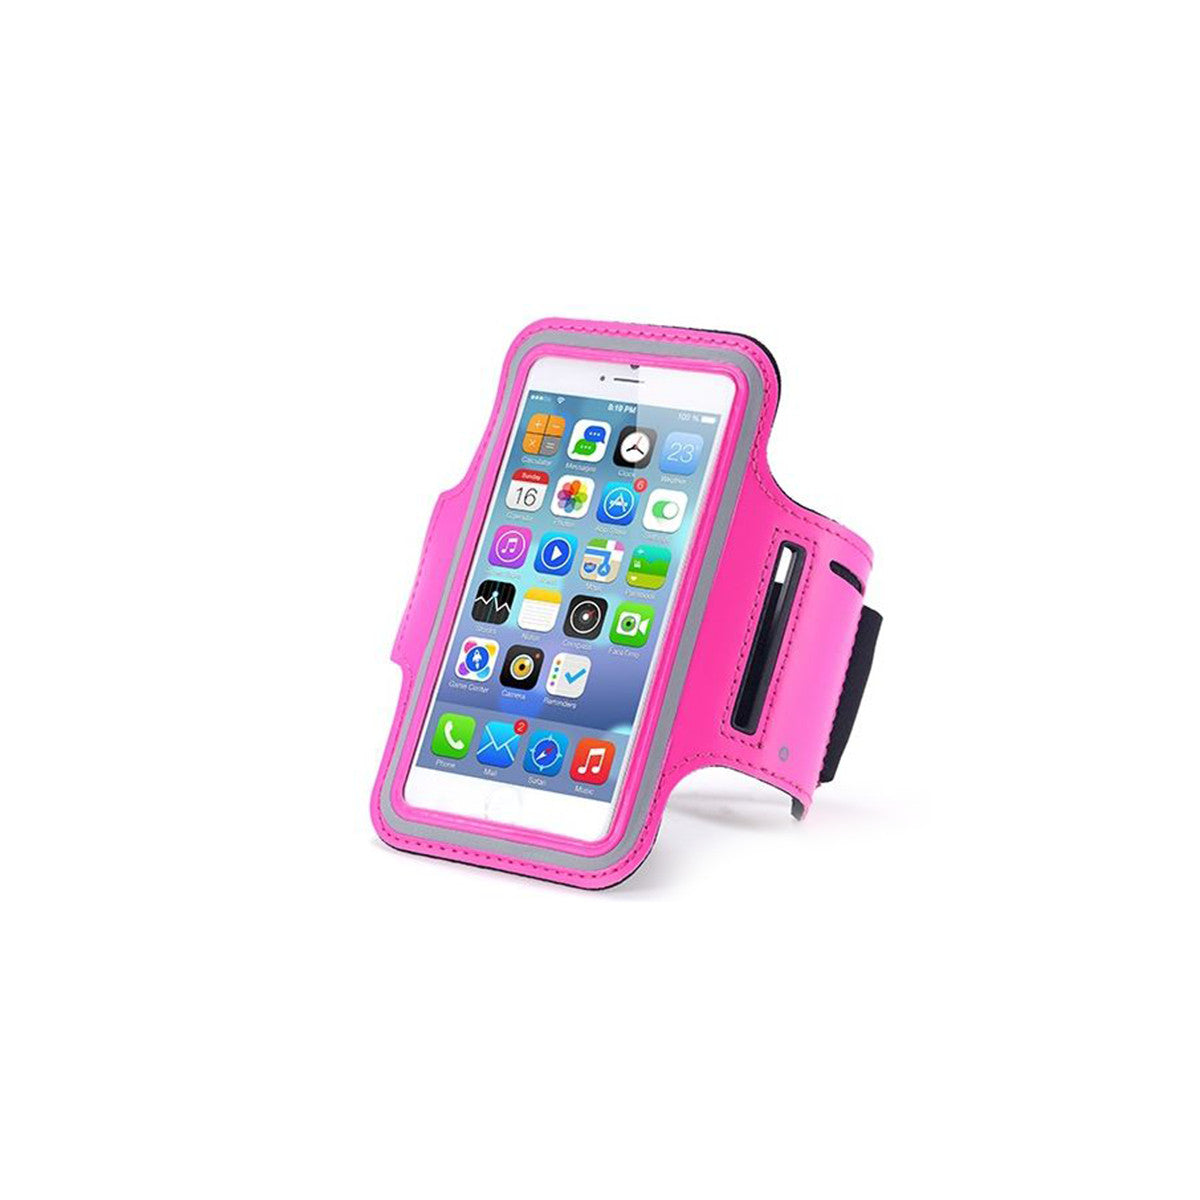 "Sport Gym Running Jogging Armband For Apple iPhone 6 Plus 5.5"" pink"